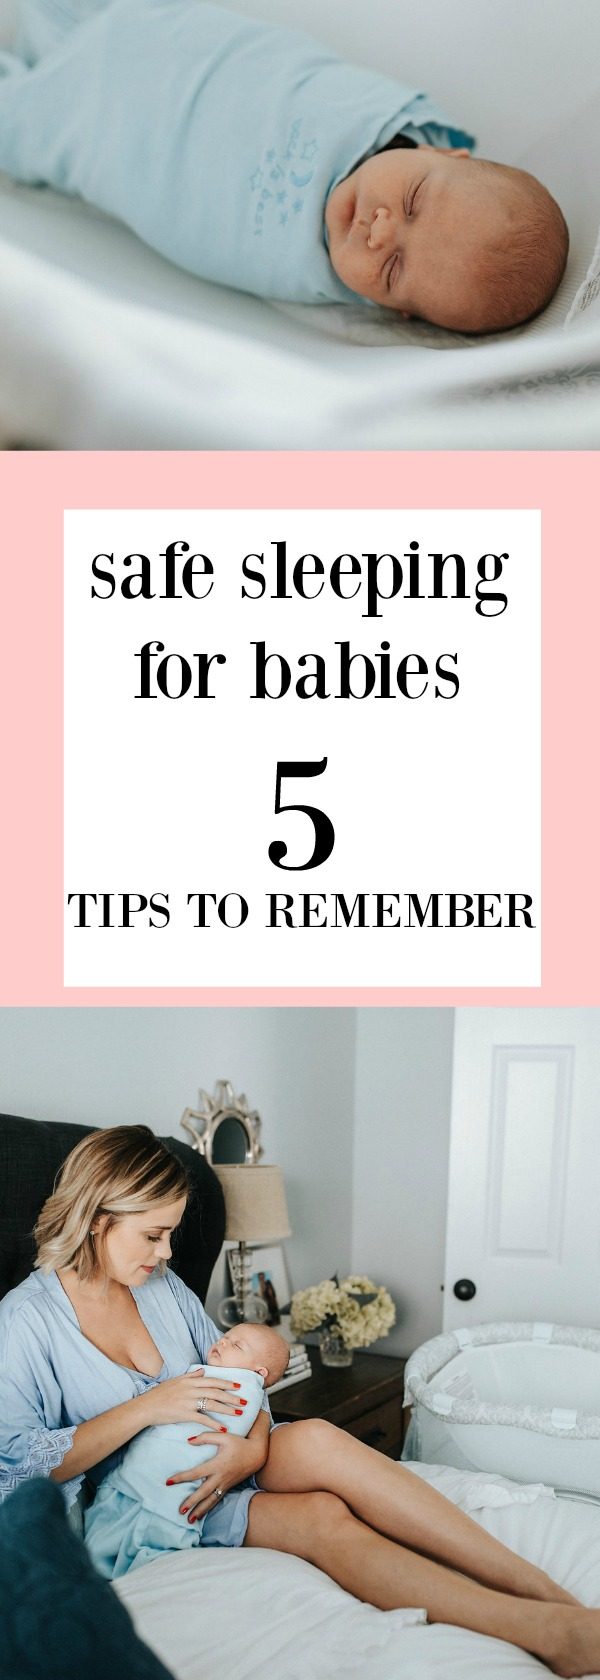 How to practice safe sleep for babies | Safe sleep for babies | HALO sleep | Uptown with Elly Brown